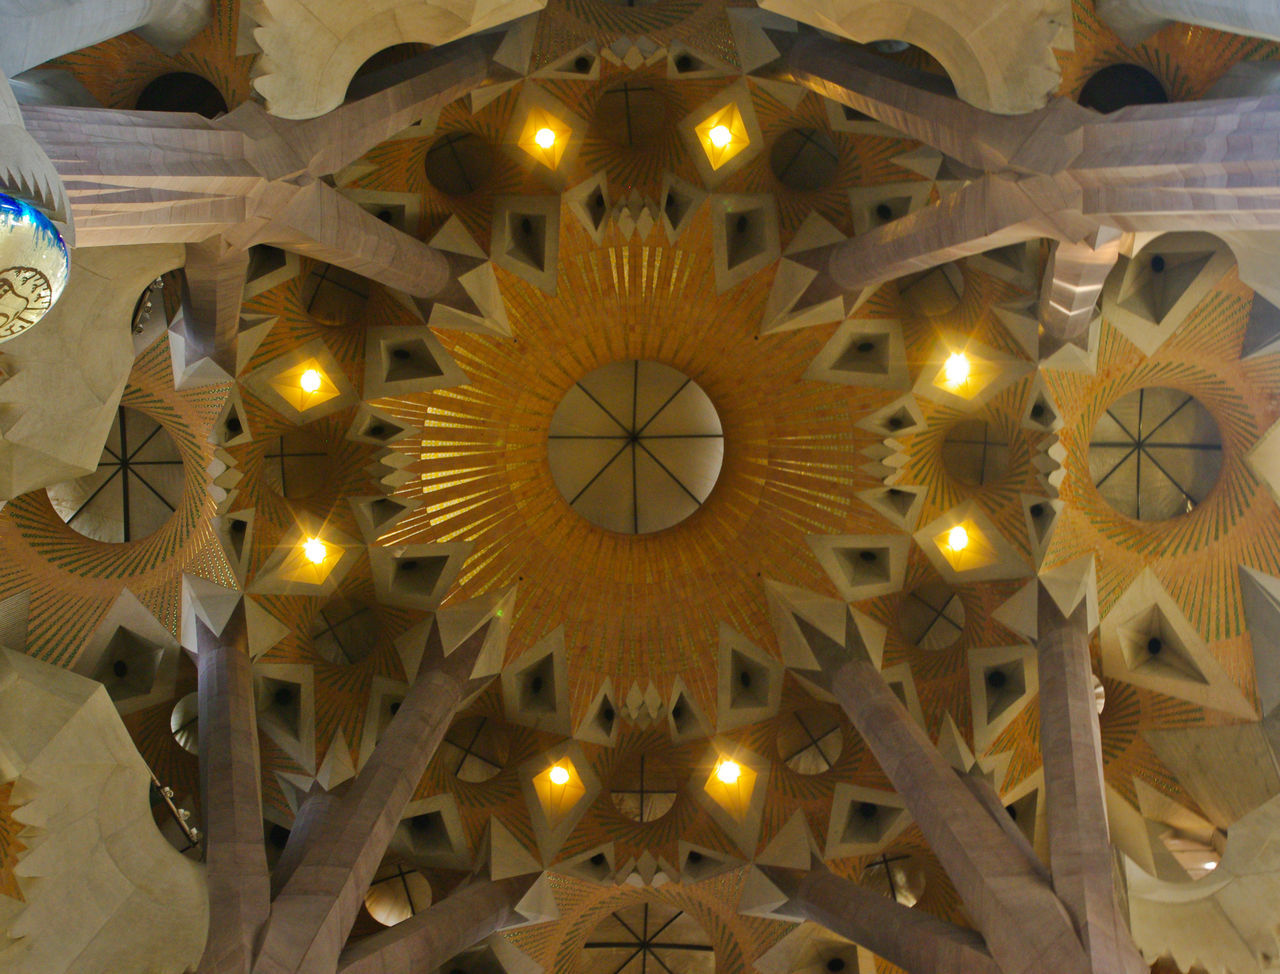 Abside Antonio Gaudi Barcelona Barcelona Turism Cathedral Day Gaudi Gaudì Architecture Work Indoors  Low Angle View Modernism No People Sagrada Familia Sagrada Familia Interior Sagrada Família Basilica